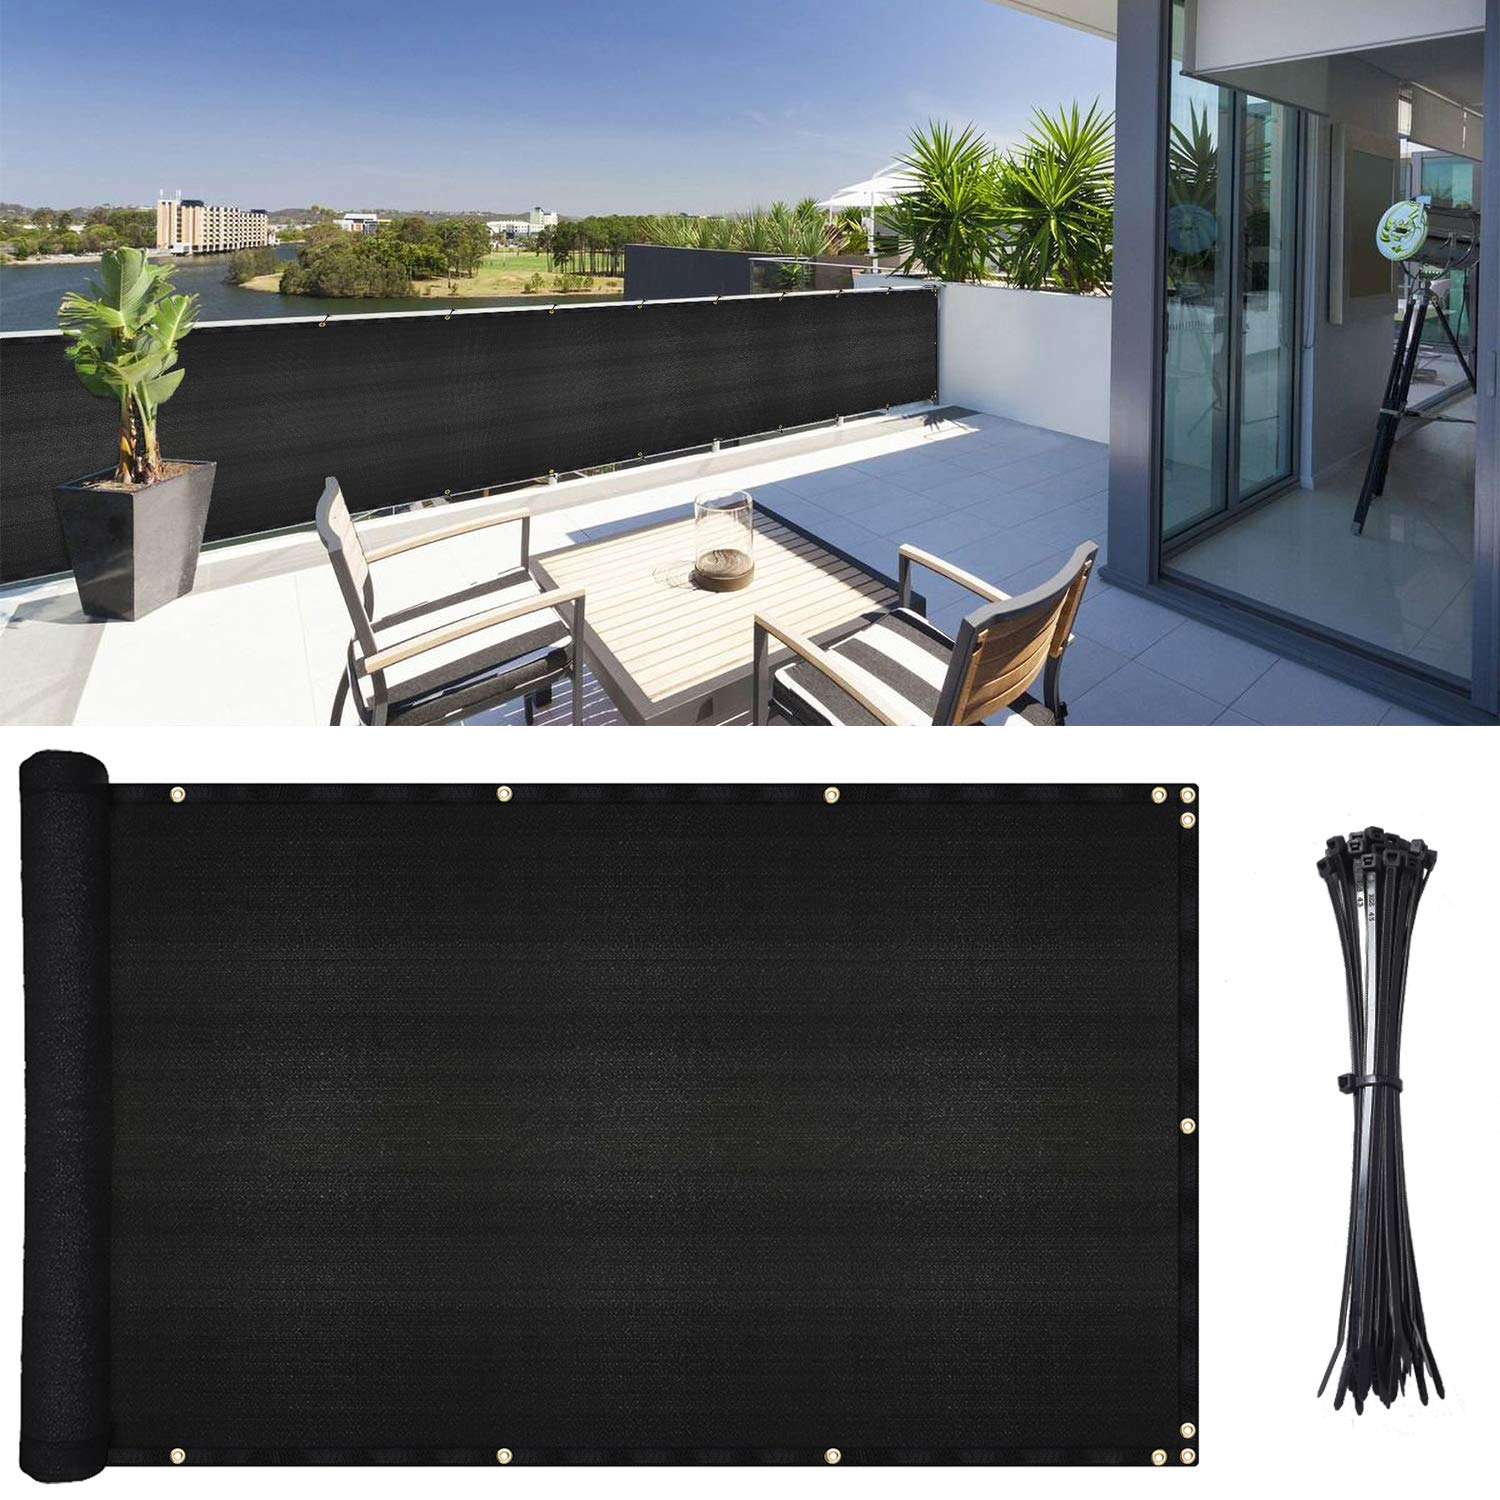 DearHouse Balcony Privacy Screen Cover, 3.5ft x17ft Fence Windscreen for Porch Deck, Outdoor, Backyard, Patio, Balcony to Cover Sun Shade, UV-Proof, Weather-Resistant, Includes 35 pc Black Cable Ties by DearHouse